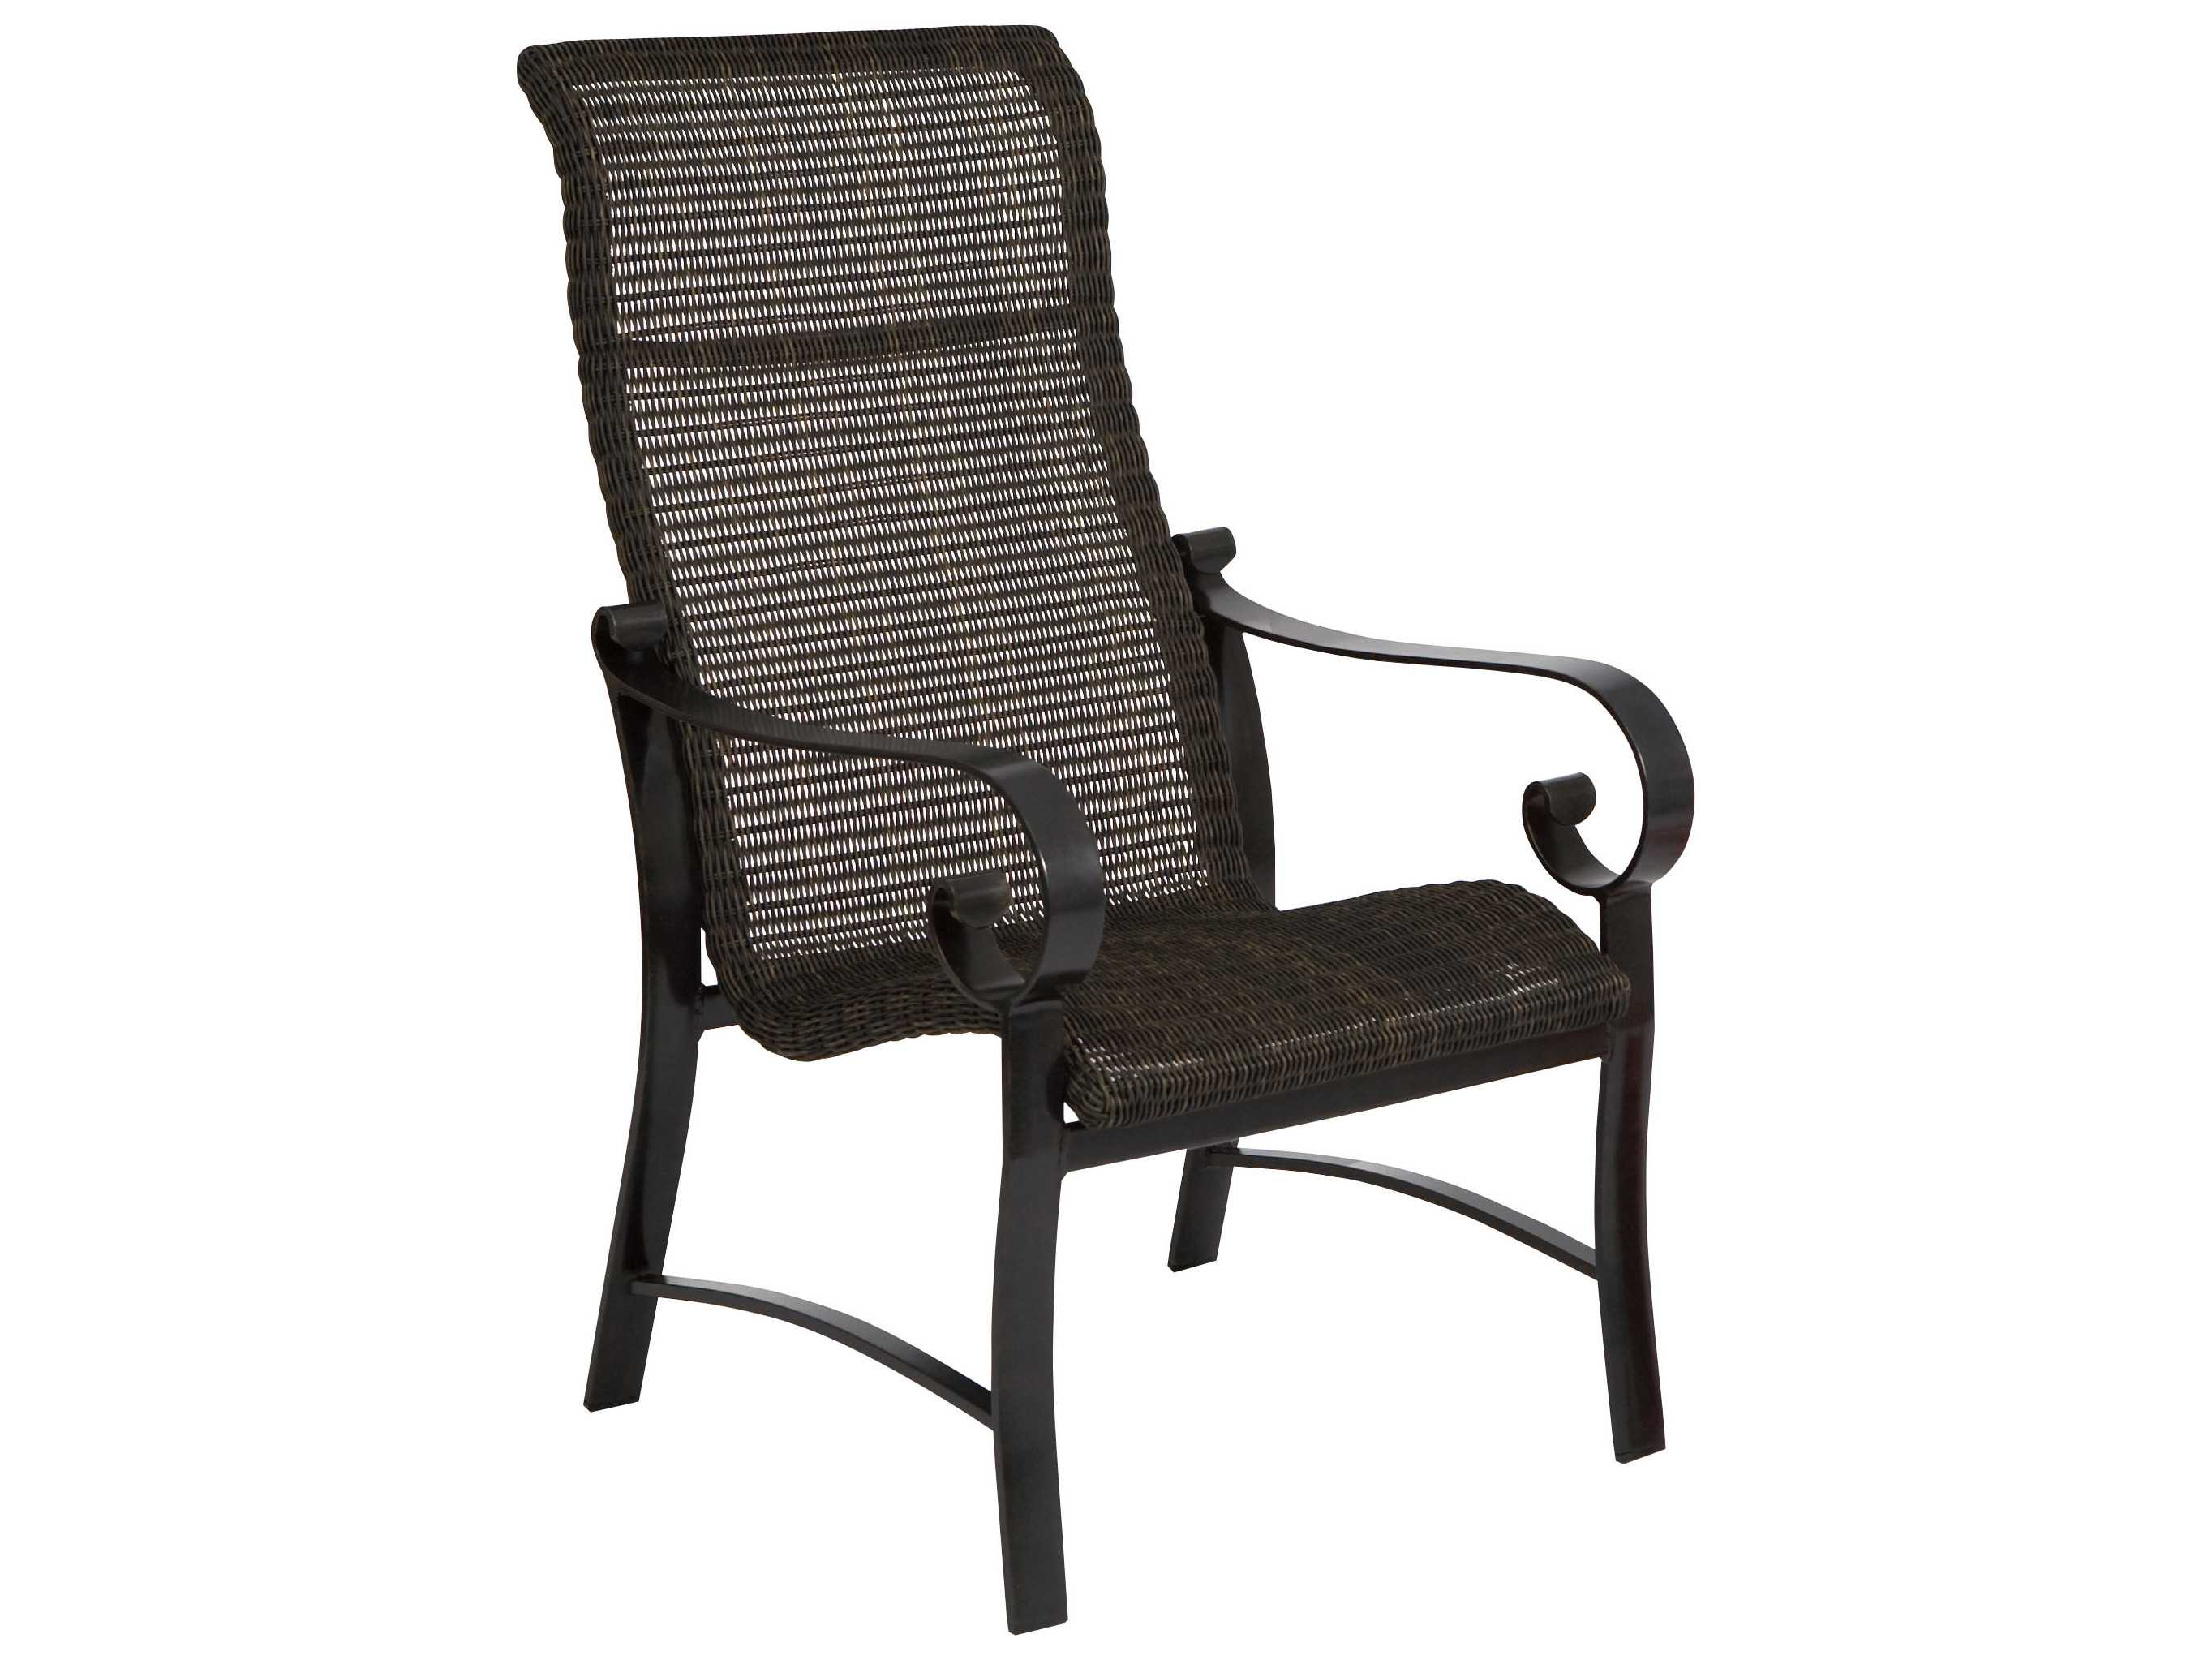 woodard belden woven round weave wicker hi back dining chair 5j0425